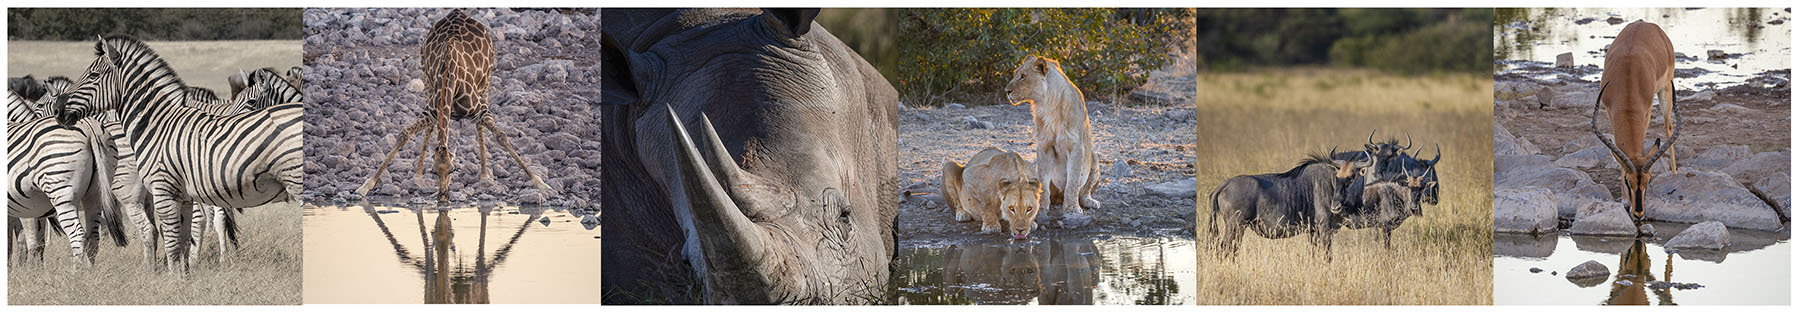 Namibia photo wildlife